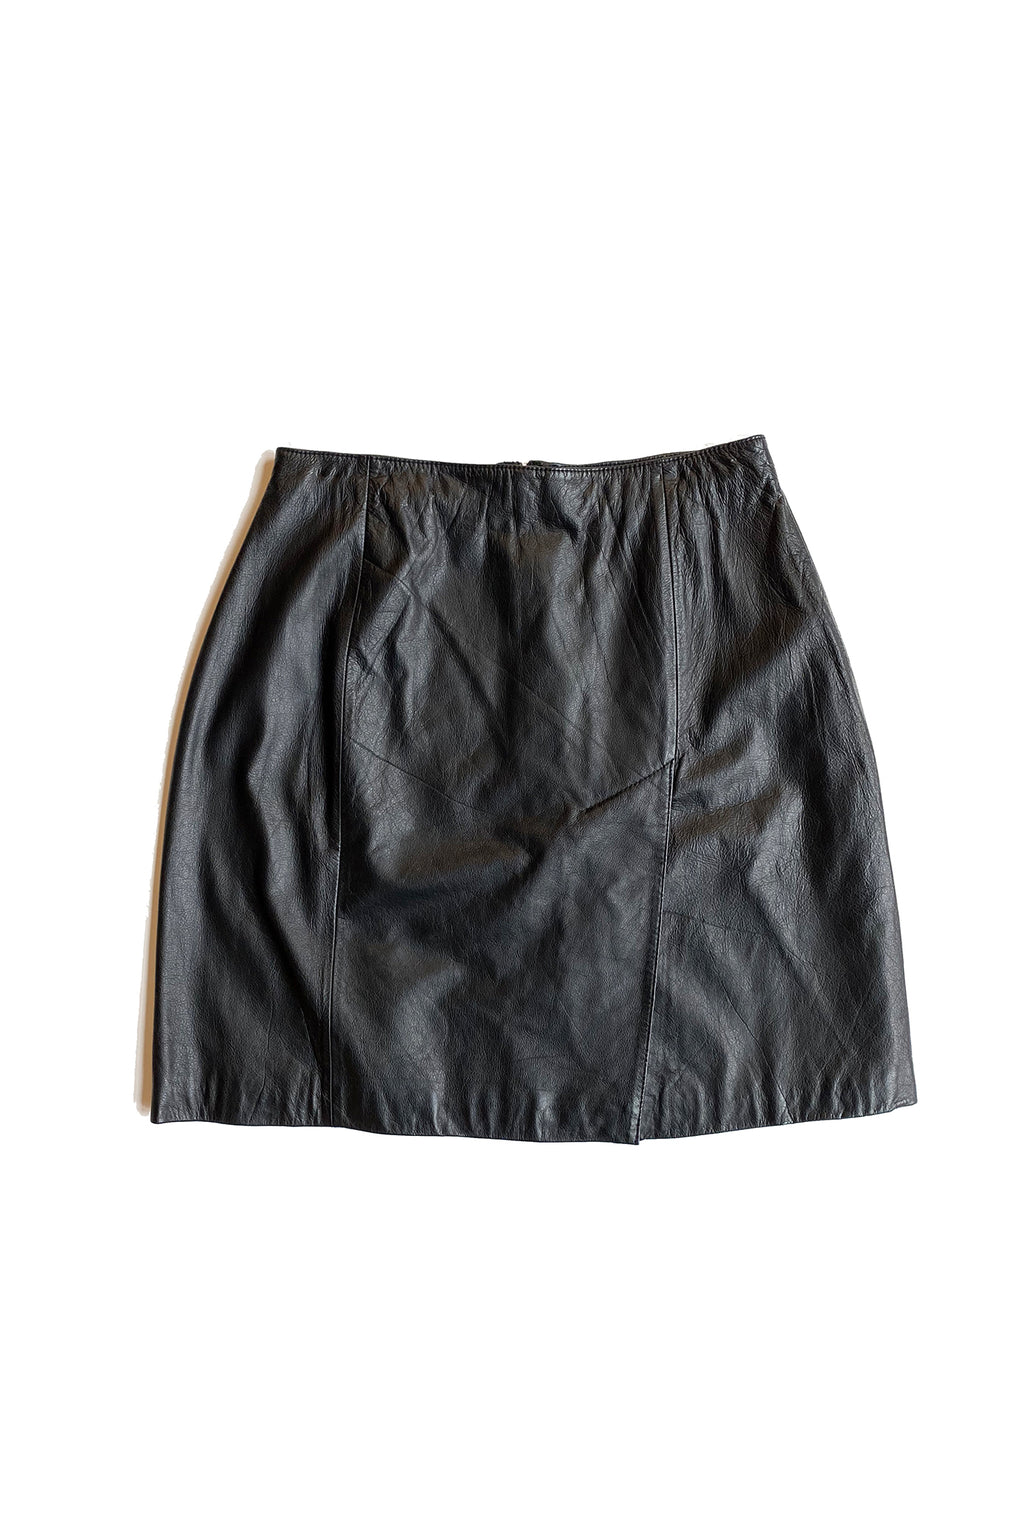 Vintage Brandon Thomas Leather Skirt